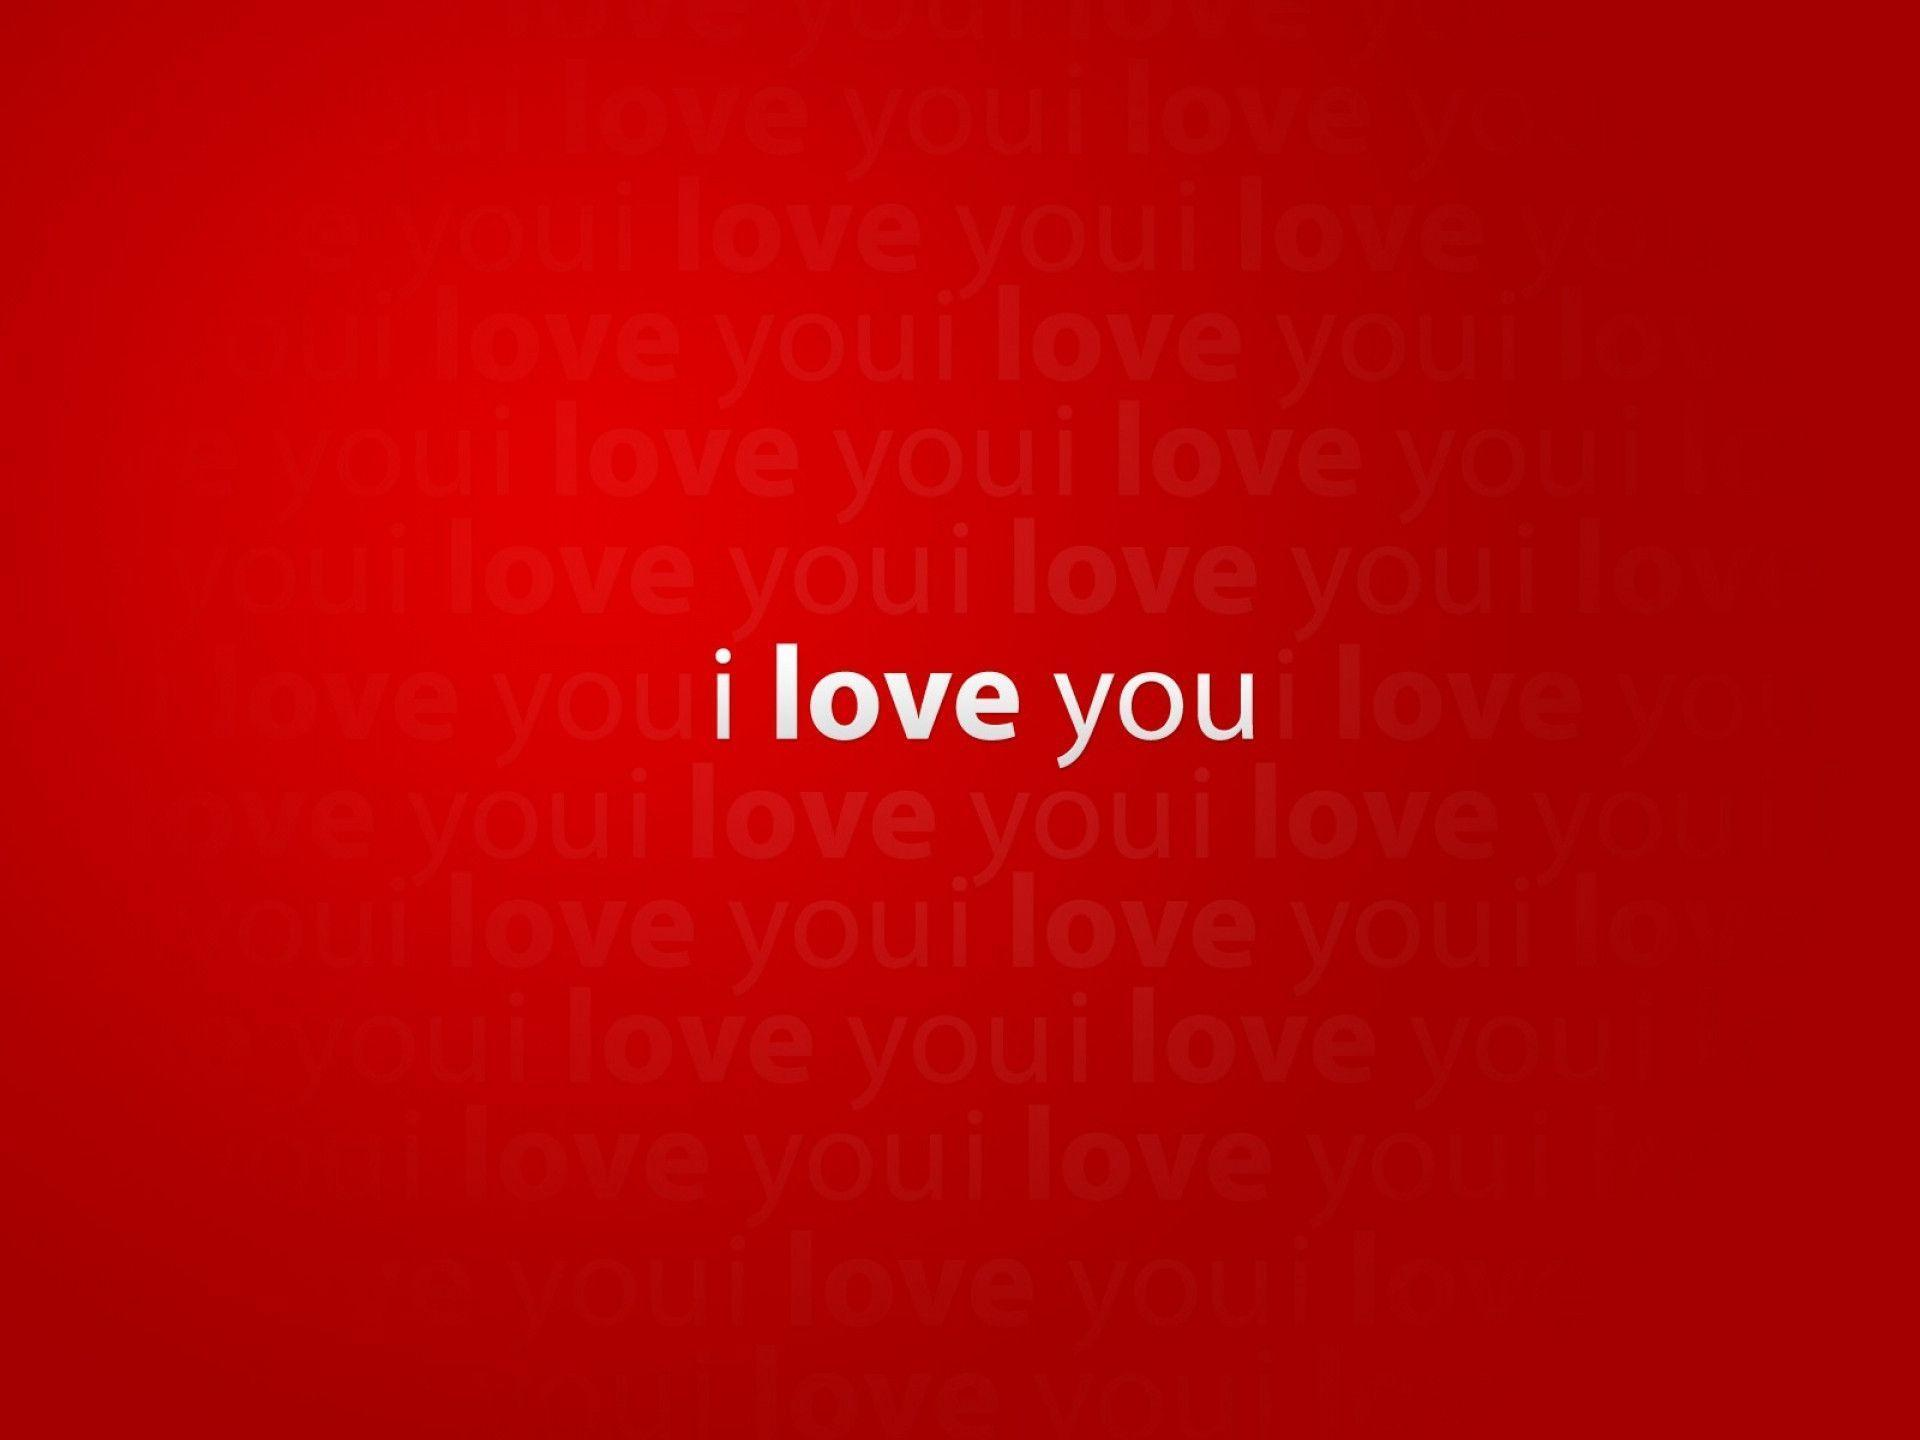 I Love You Desktop Wallpapers 1920x1440 16319 Full HD Wallpapers